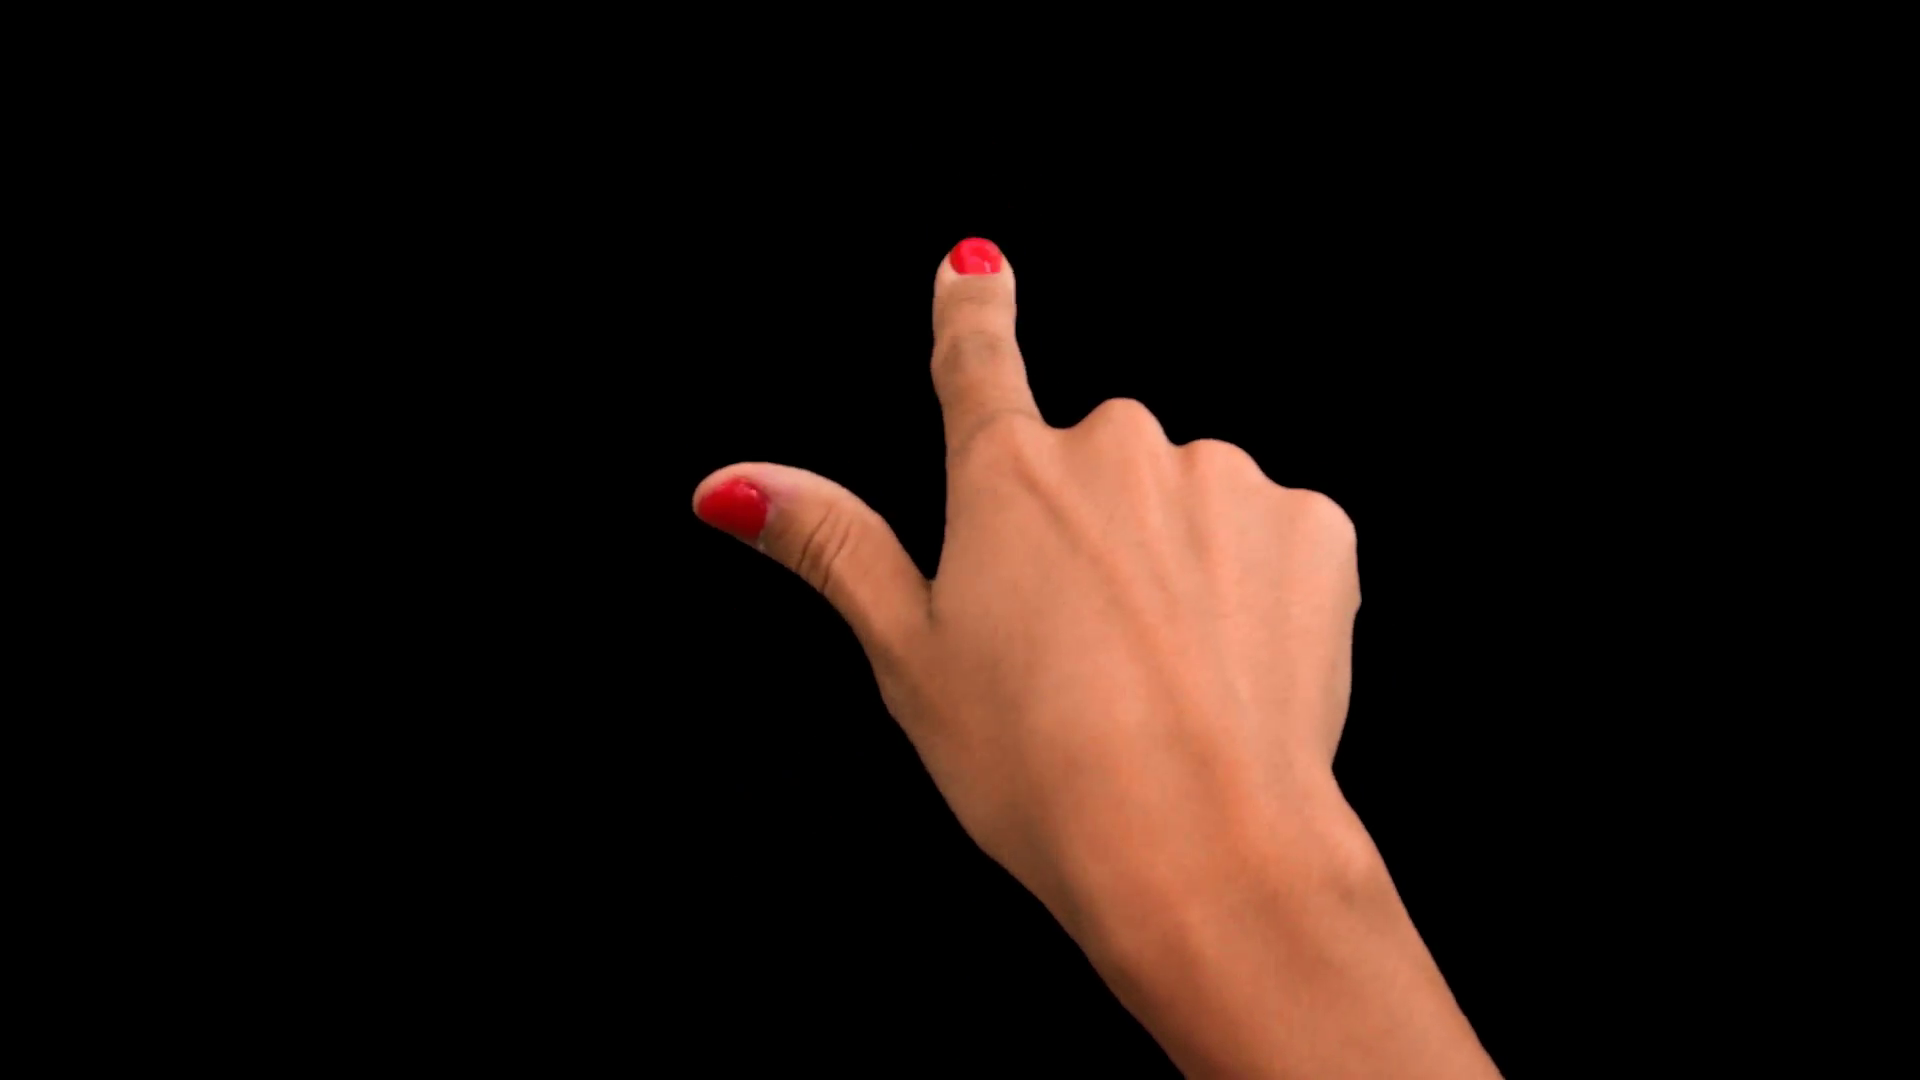 Mobile Device Touch Screen Finger Gestures Full Keyed. A finger taps and  swipes on a screen touch to simulate interacting with a mobile device. - Finger HD PNG